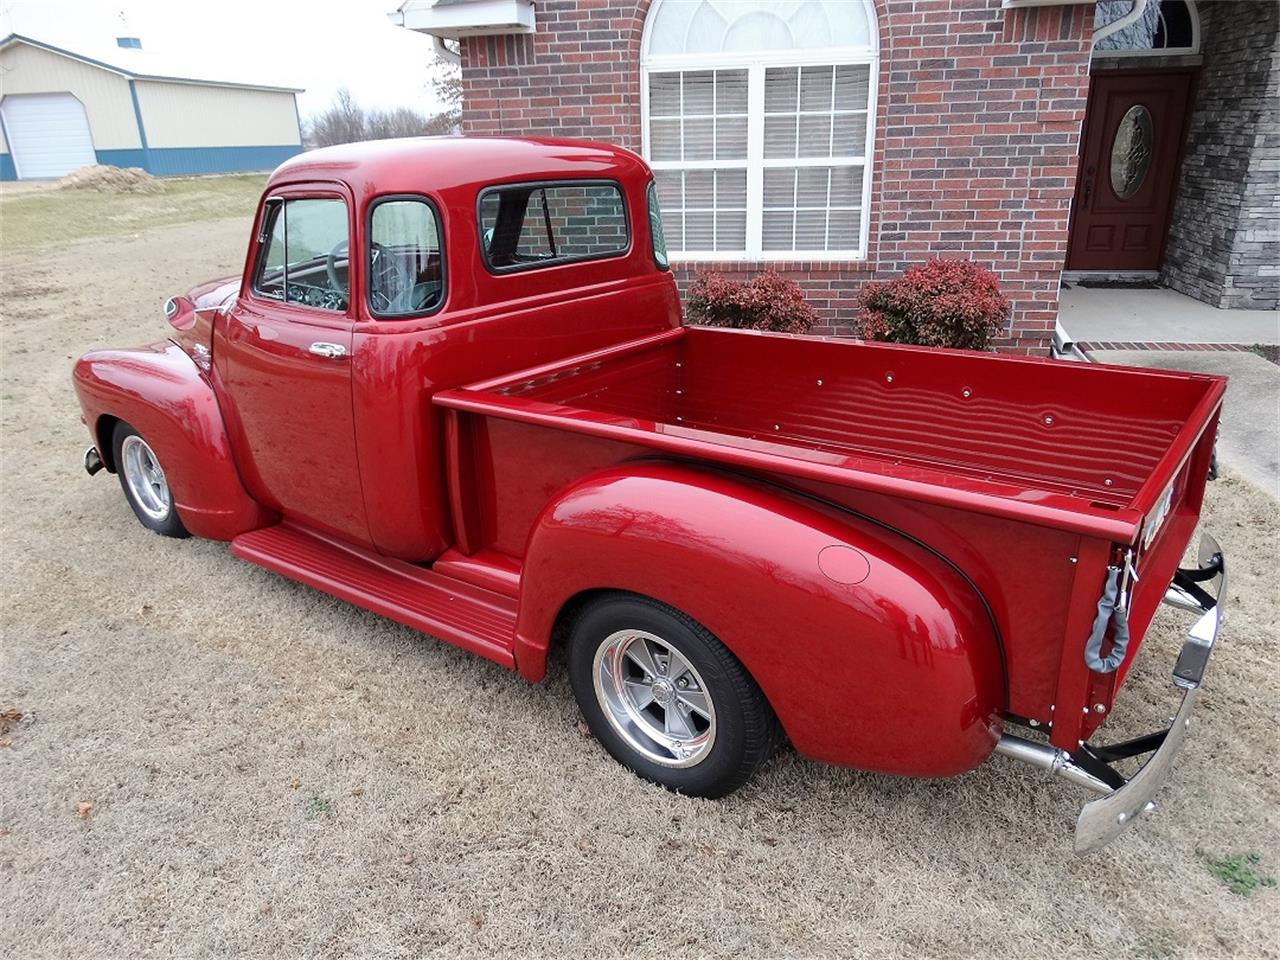 Large Picture of Classic 1954 GMC Pickup located in Springdale Arkansas Offered by a Private Seller - N8MG